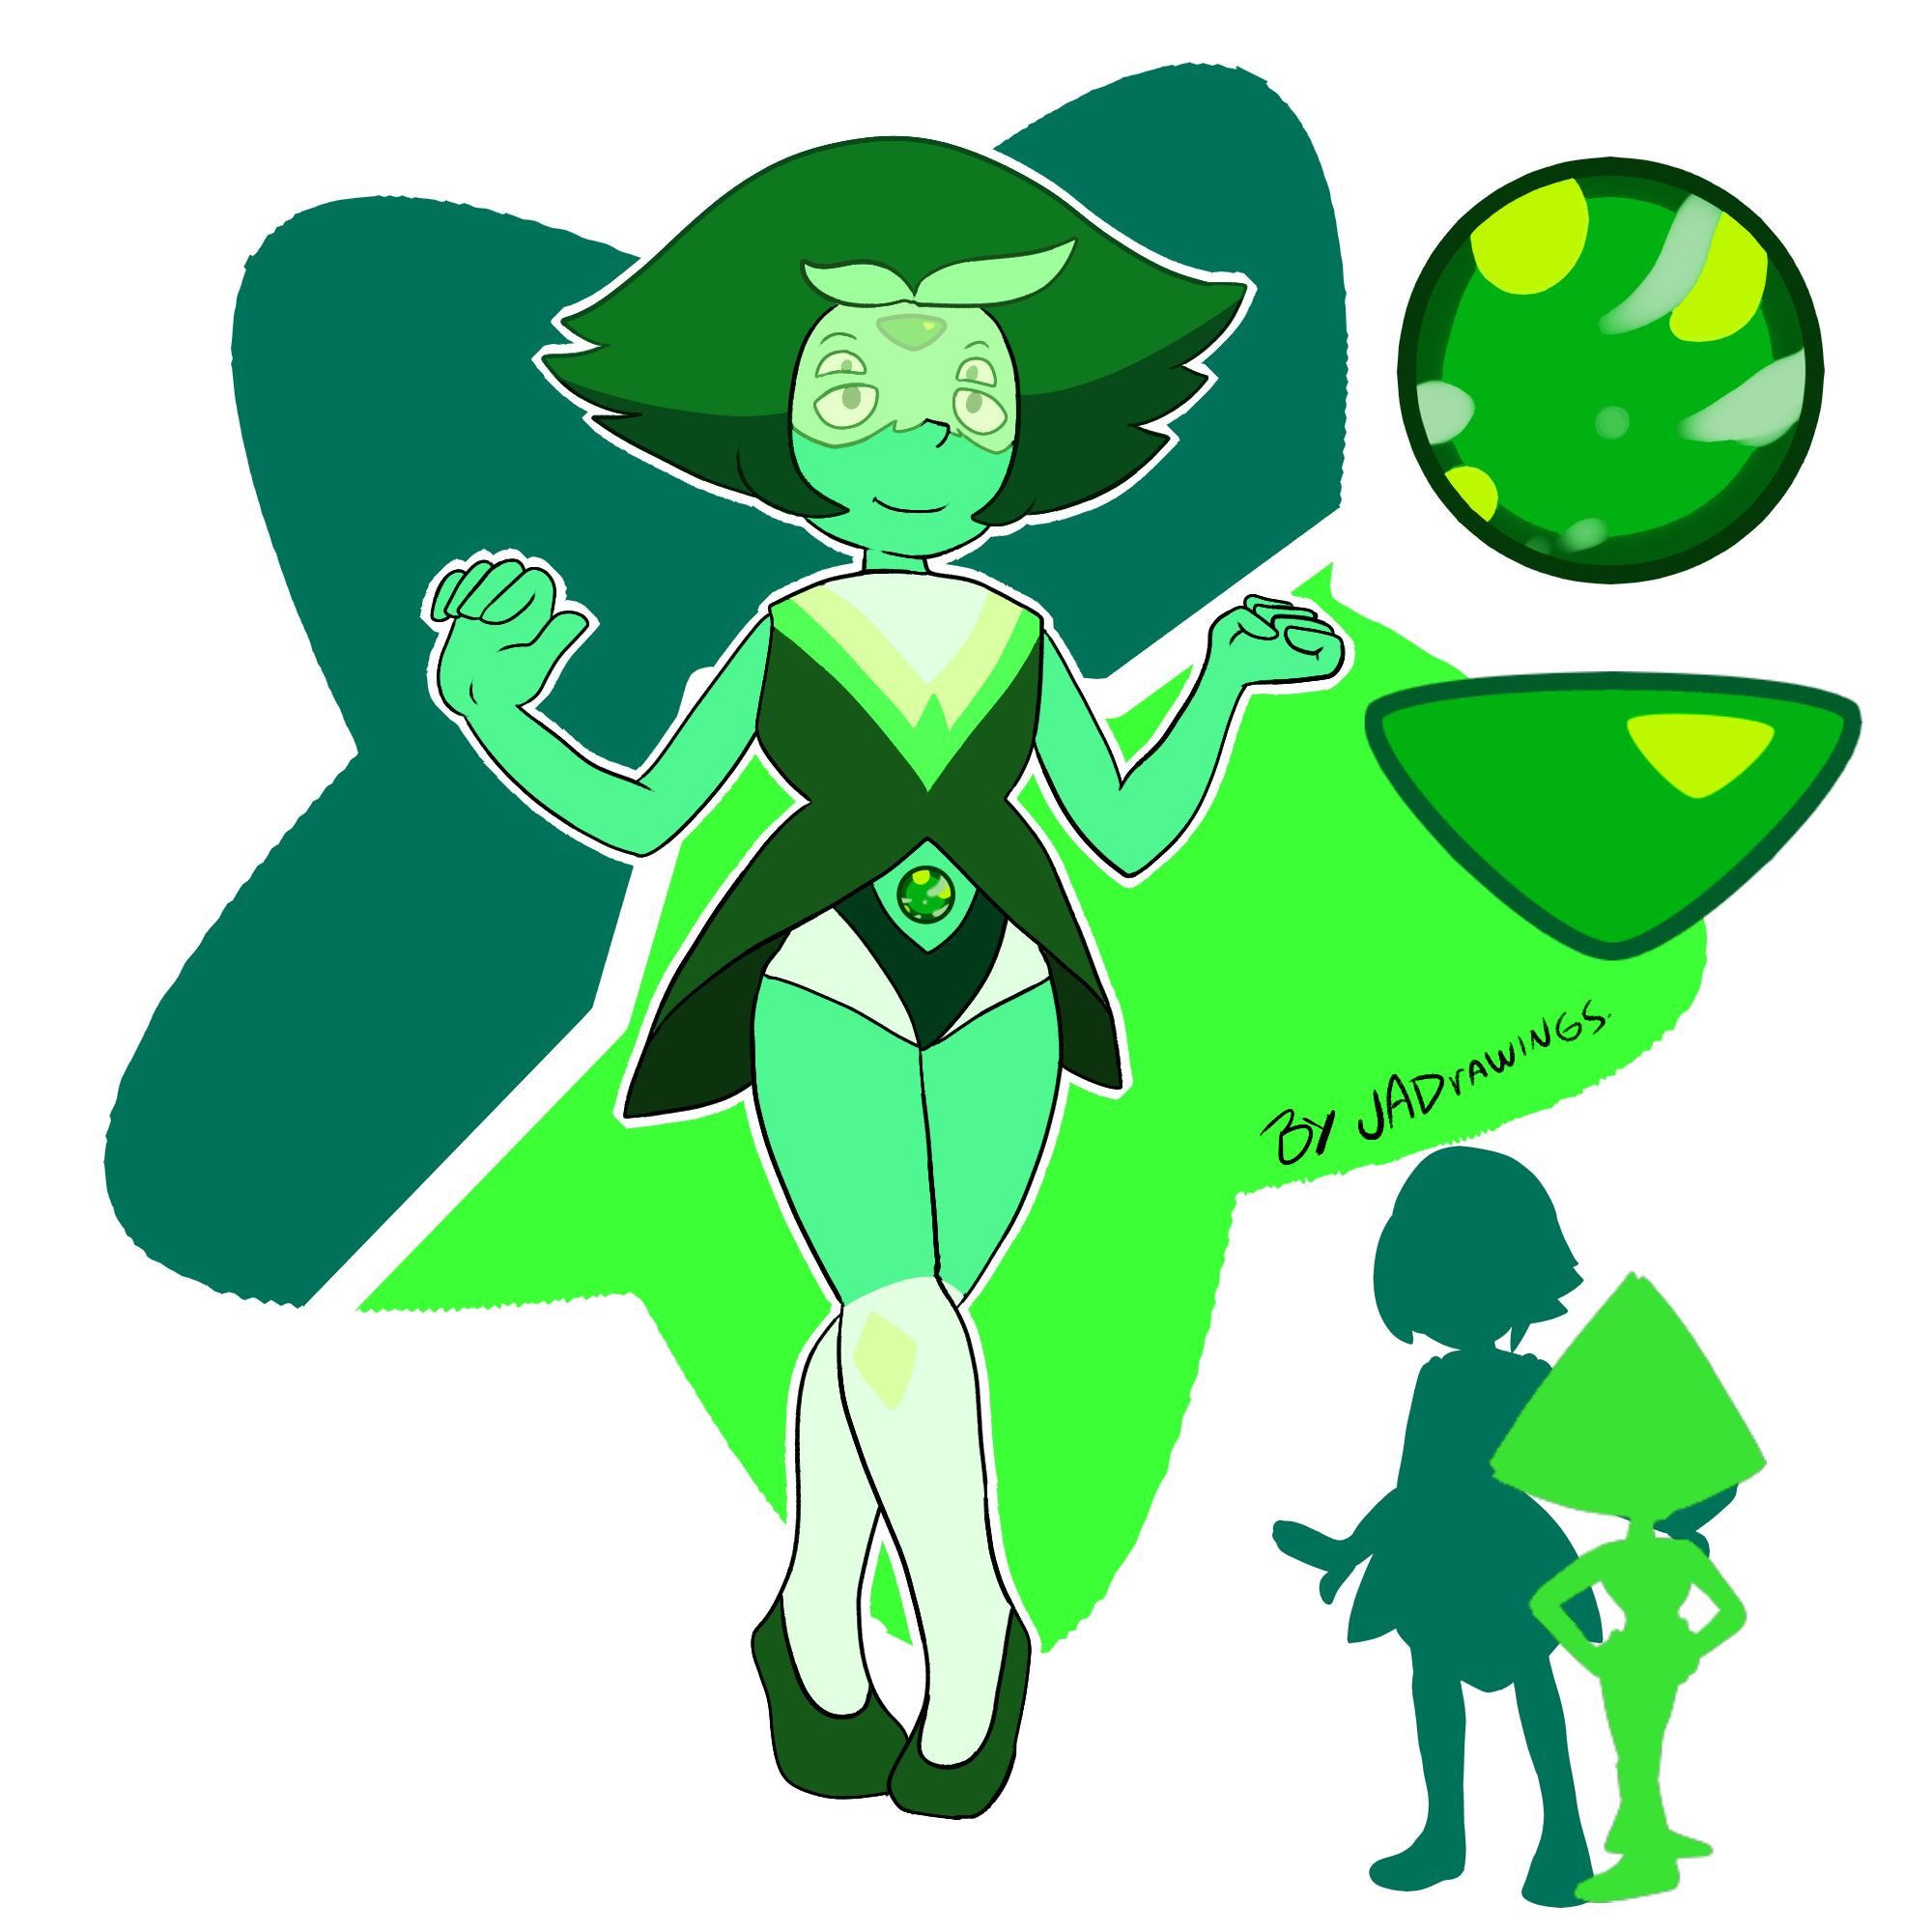 Watch besides Steven Universe Fusion Zoisite 556286913 further Watch besides Fusion Chrome Vesuvianite 681023473 as well Watch. on fuse tv